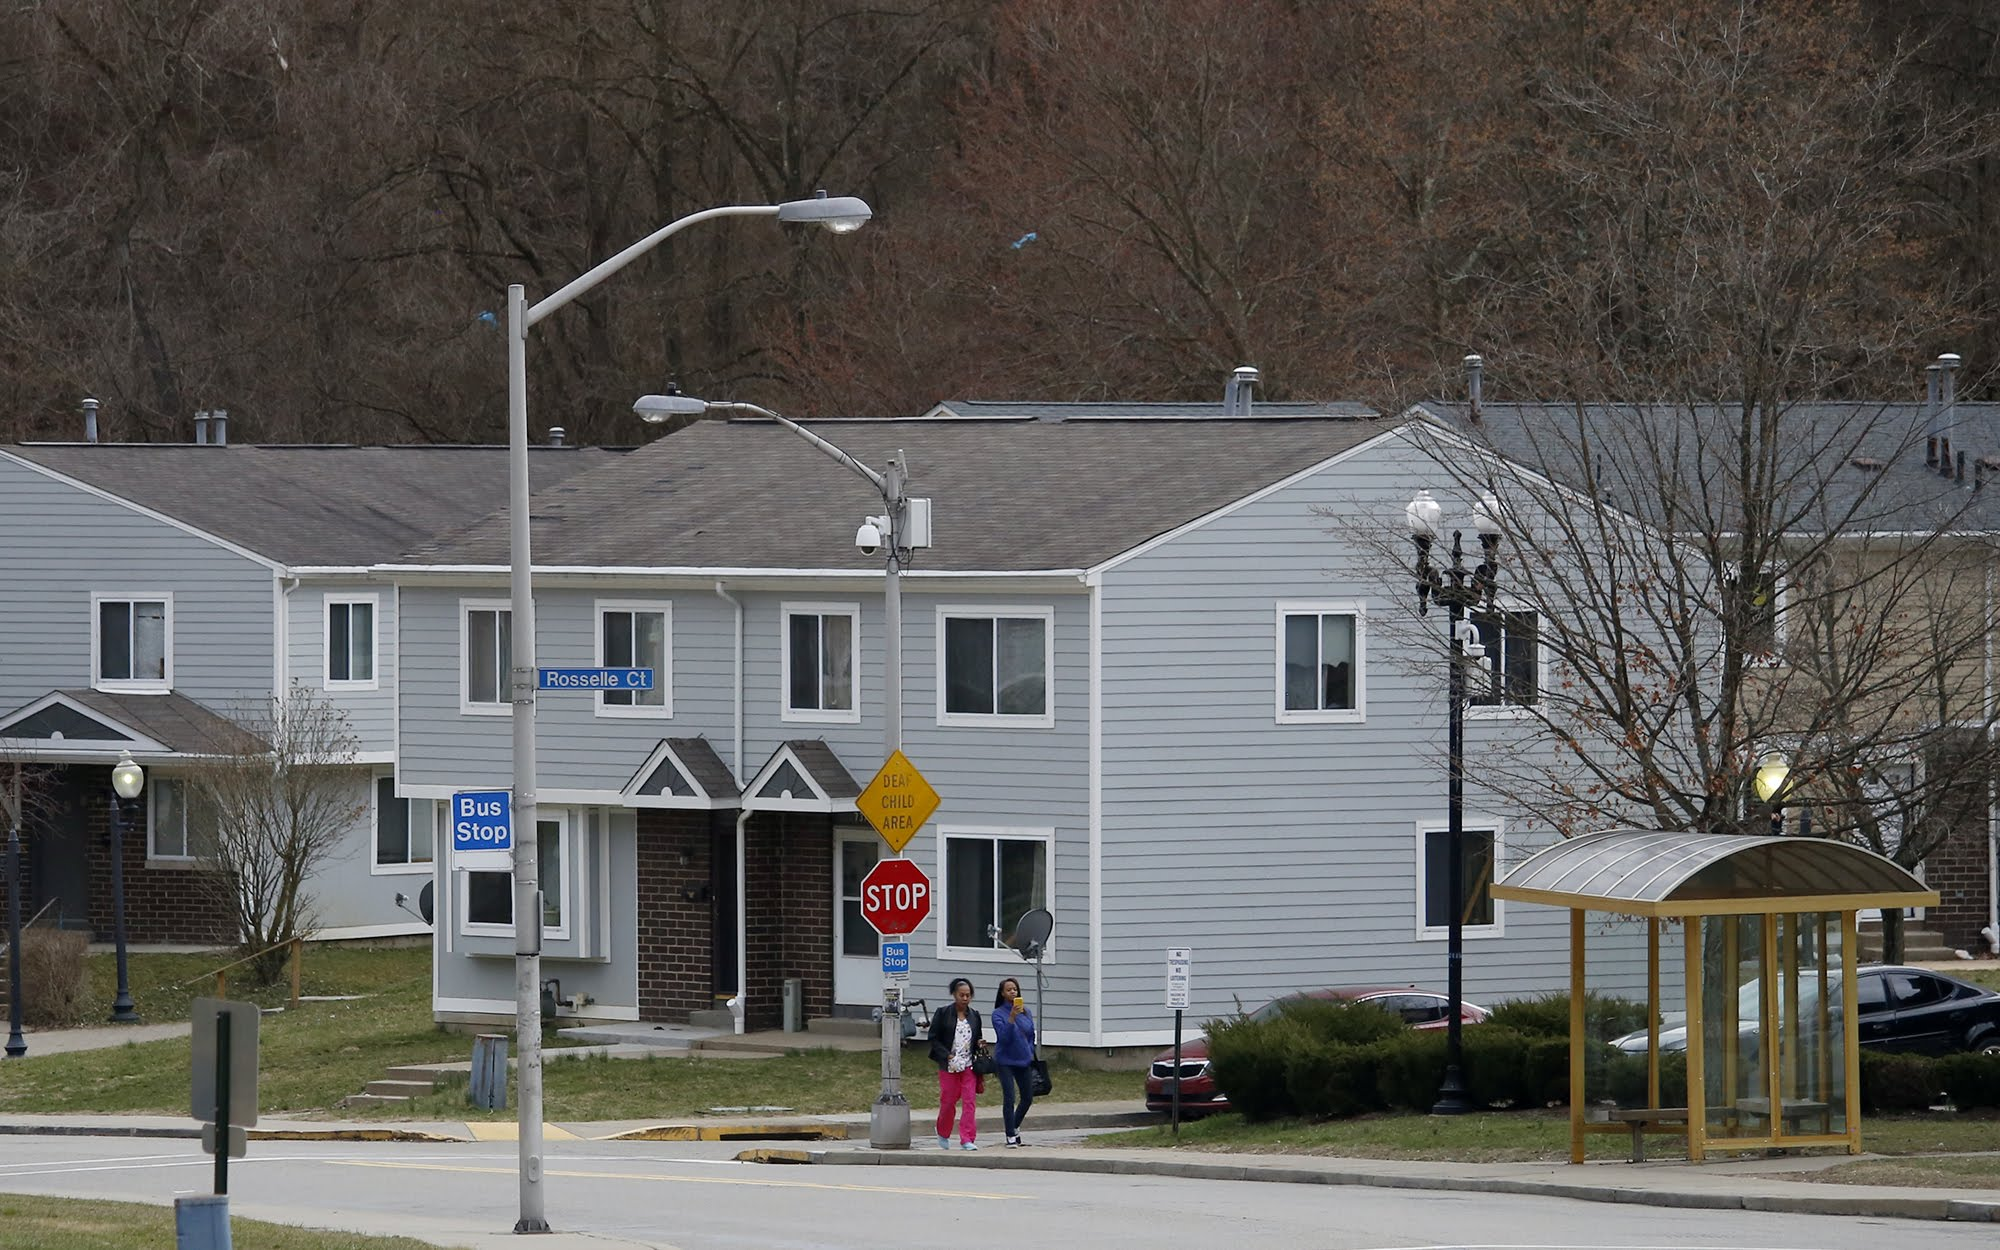 In housing authority's attempt to privatize public housing, missteps